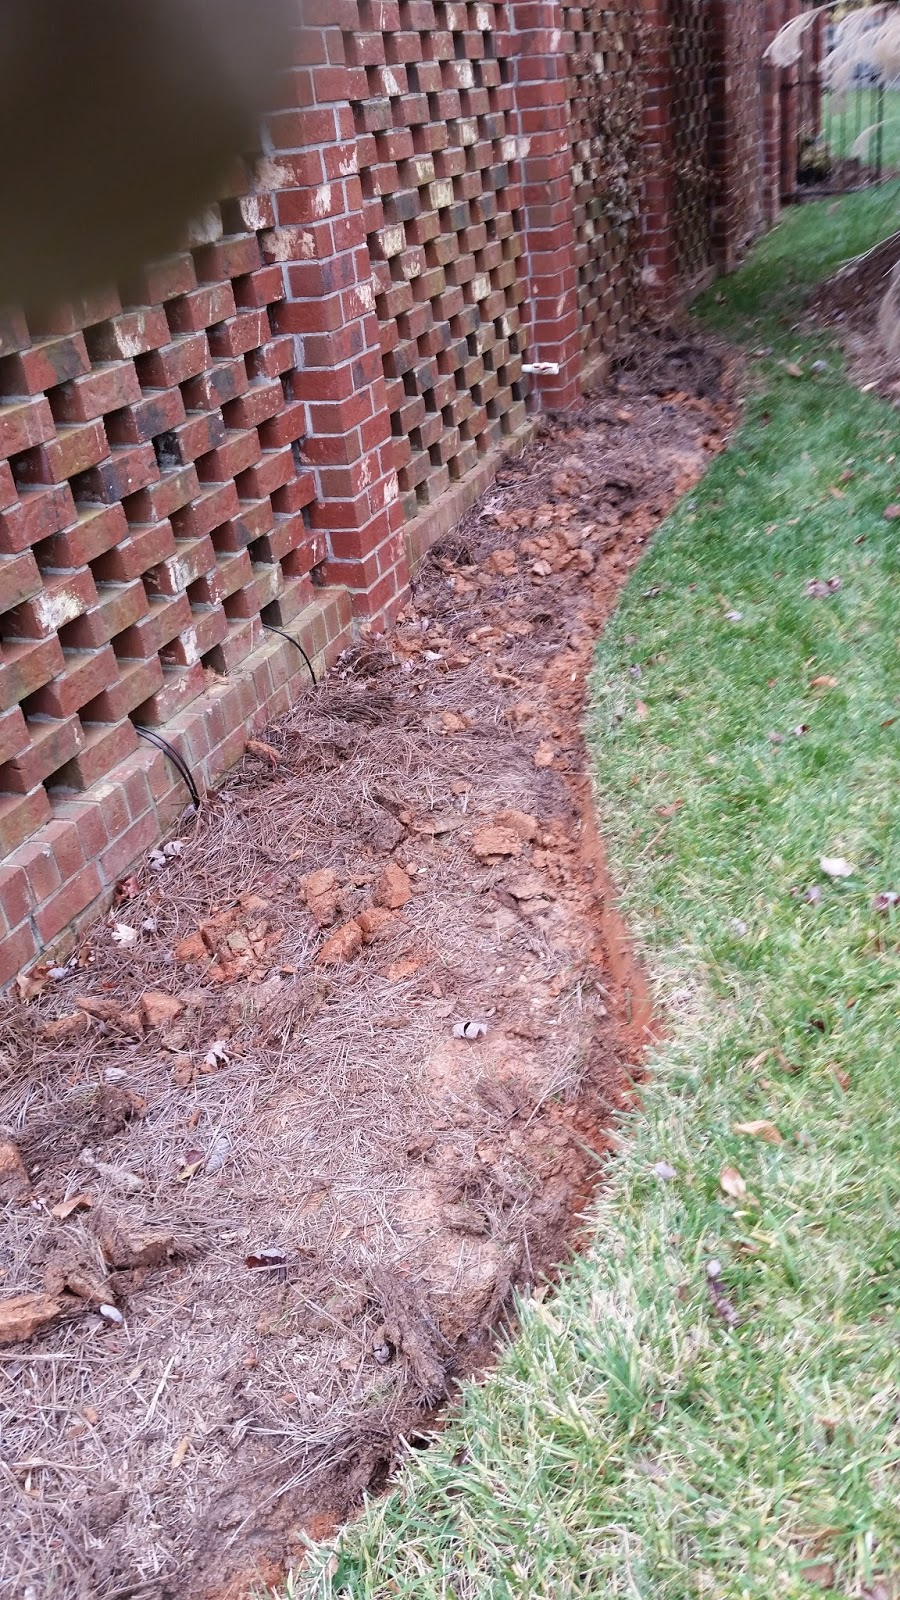 Proper bed edging with a flat spade